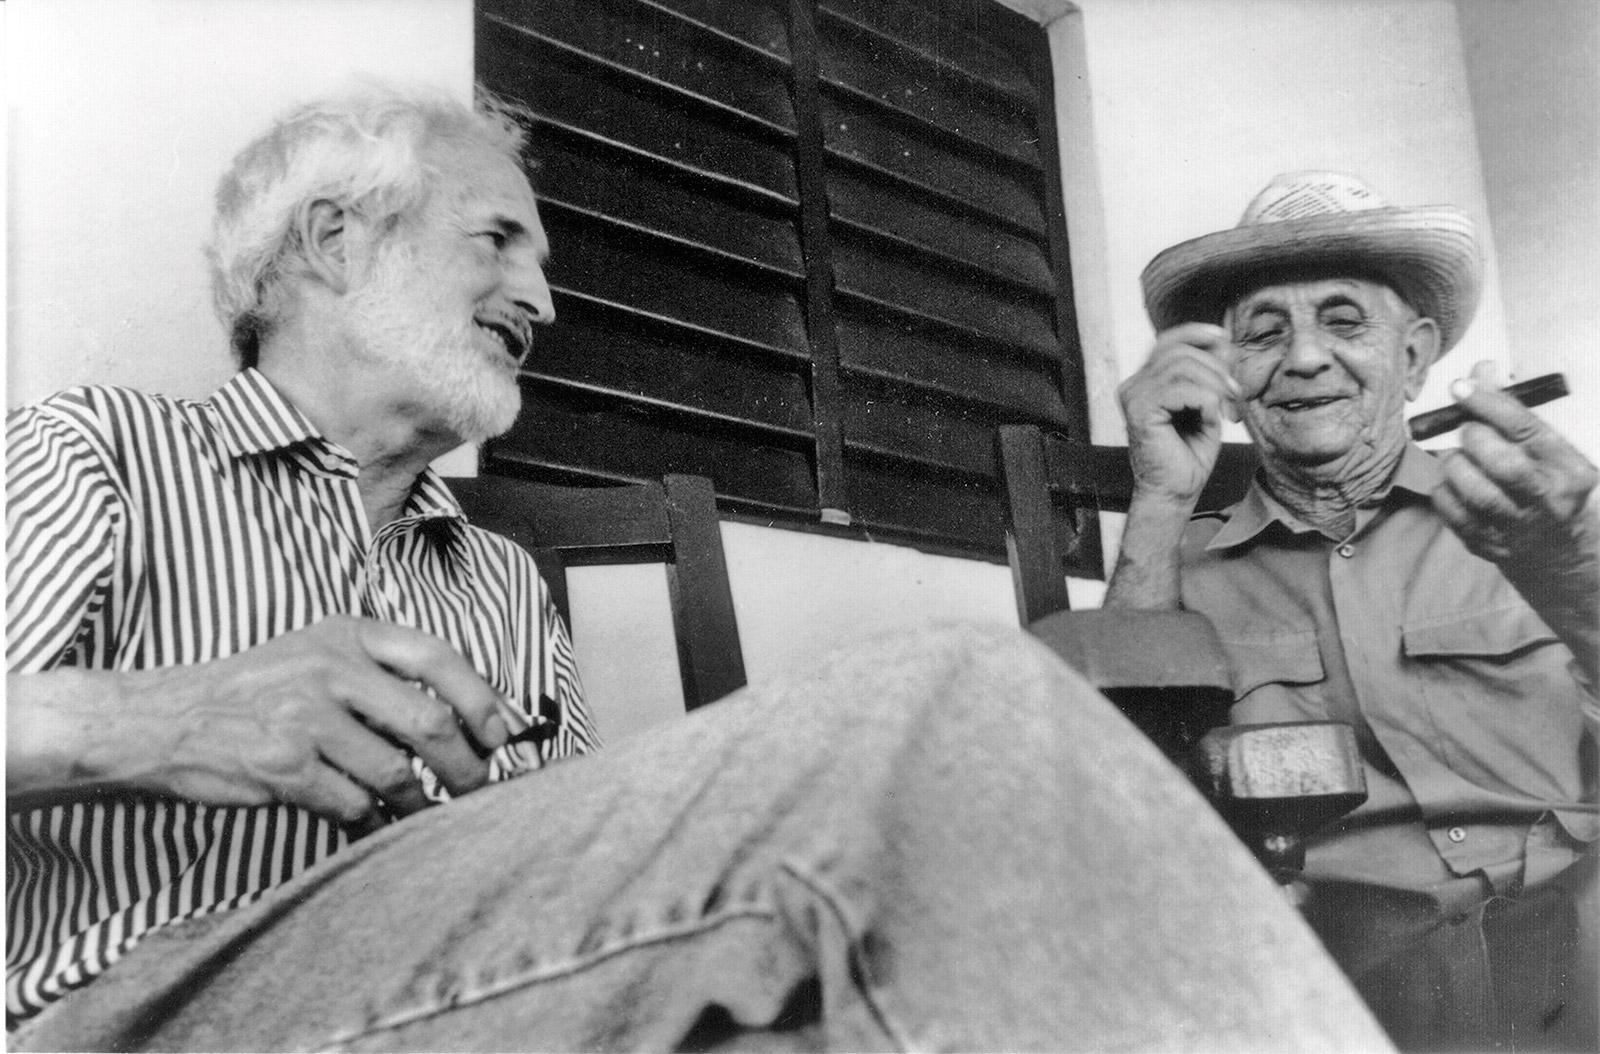 Villiger with legendary grower Alejandro Robaina on the porch of his Cuban farmhouse.